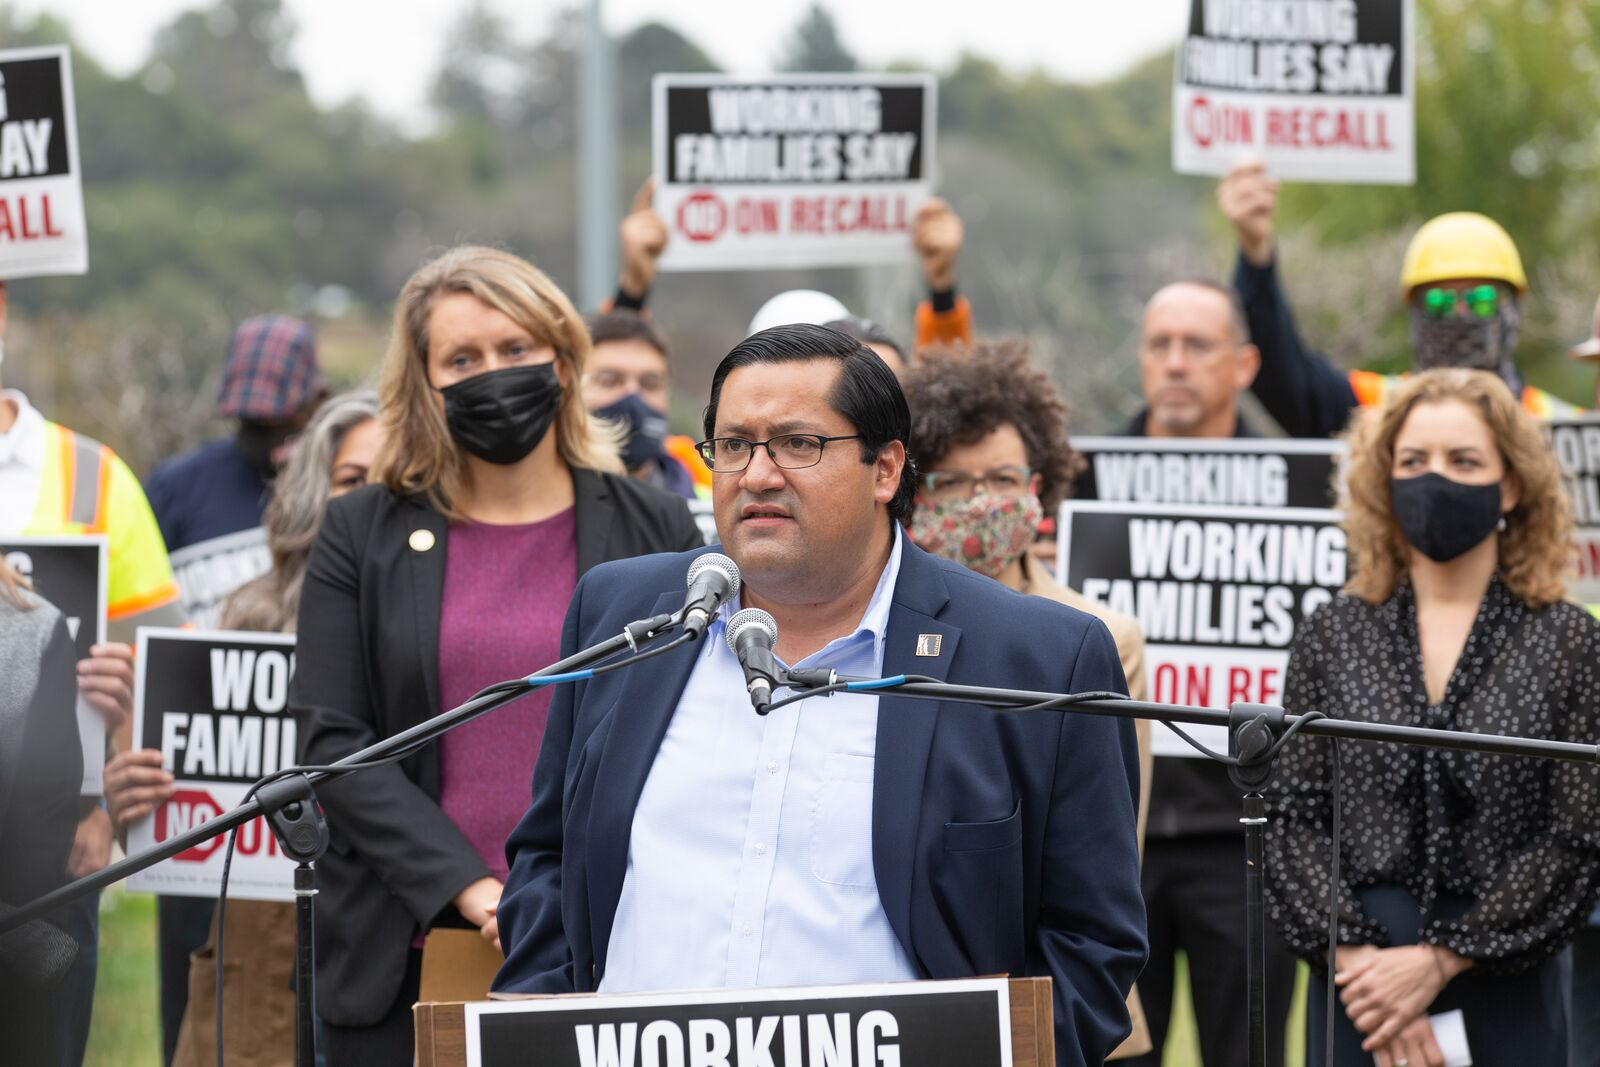 Berkeley Mayor Jesse Arreguin speaking at the Working Families Against the Recall press conference urging voters to say no on the Governor Newsom recall election.